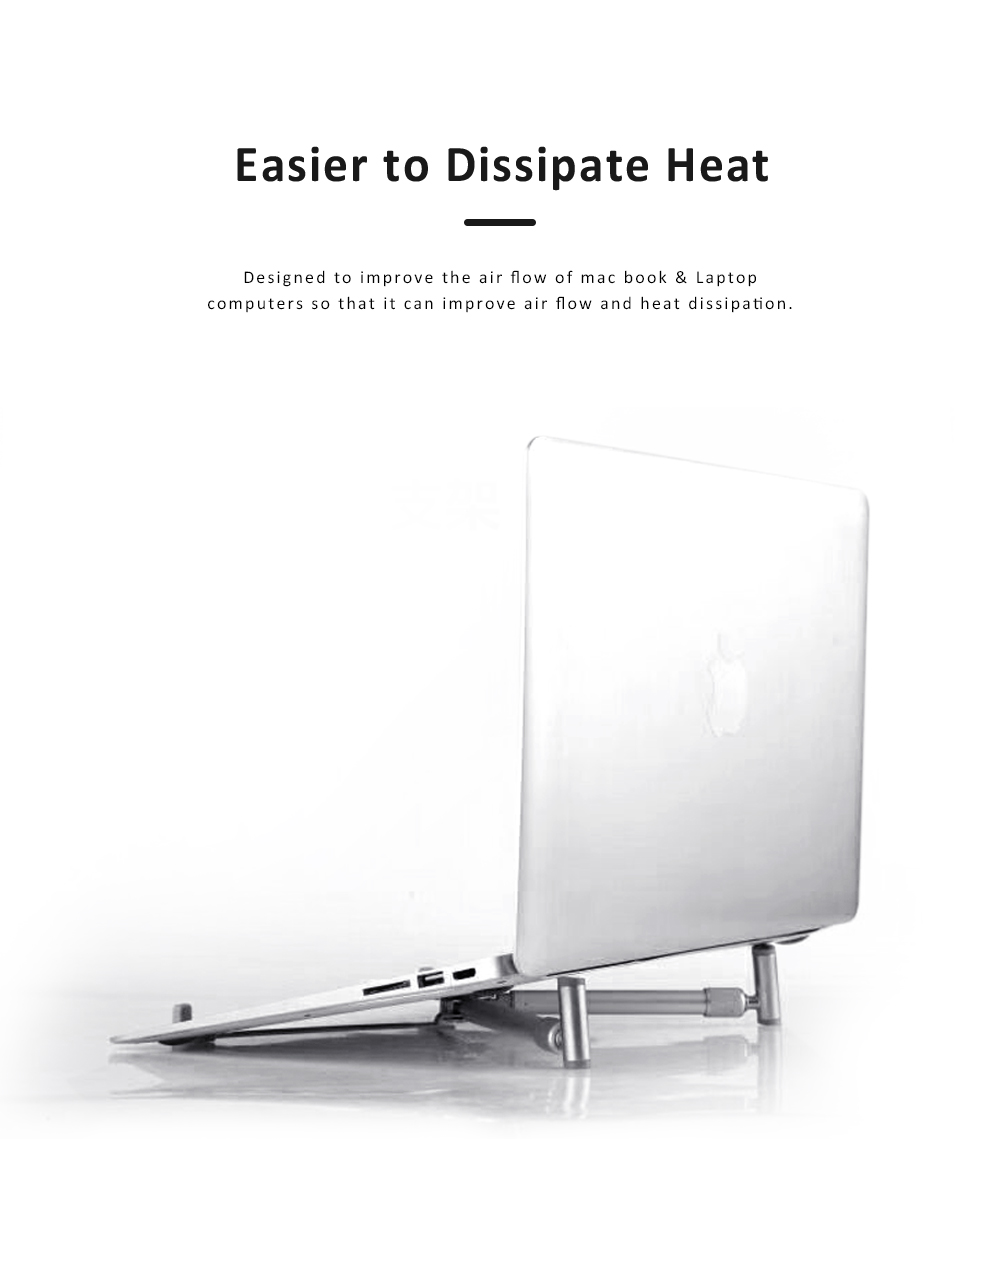 Heat Dissipation Collapsible Mount Holder, Aluminum Alloy Silicone Desktop Stand for iPad, Laptop, Tablet & Mobile Phone 1